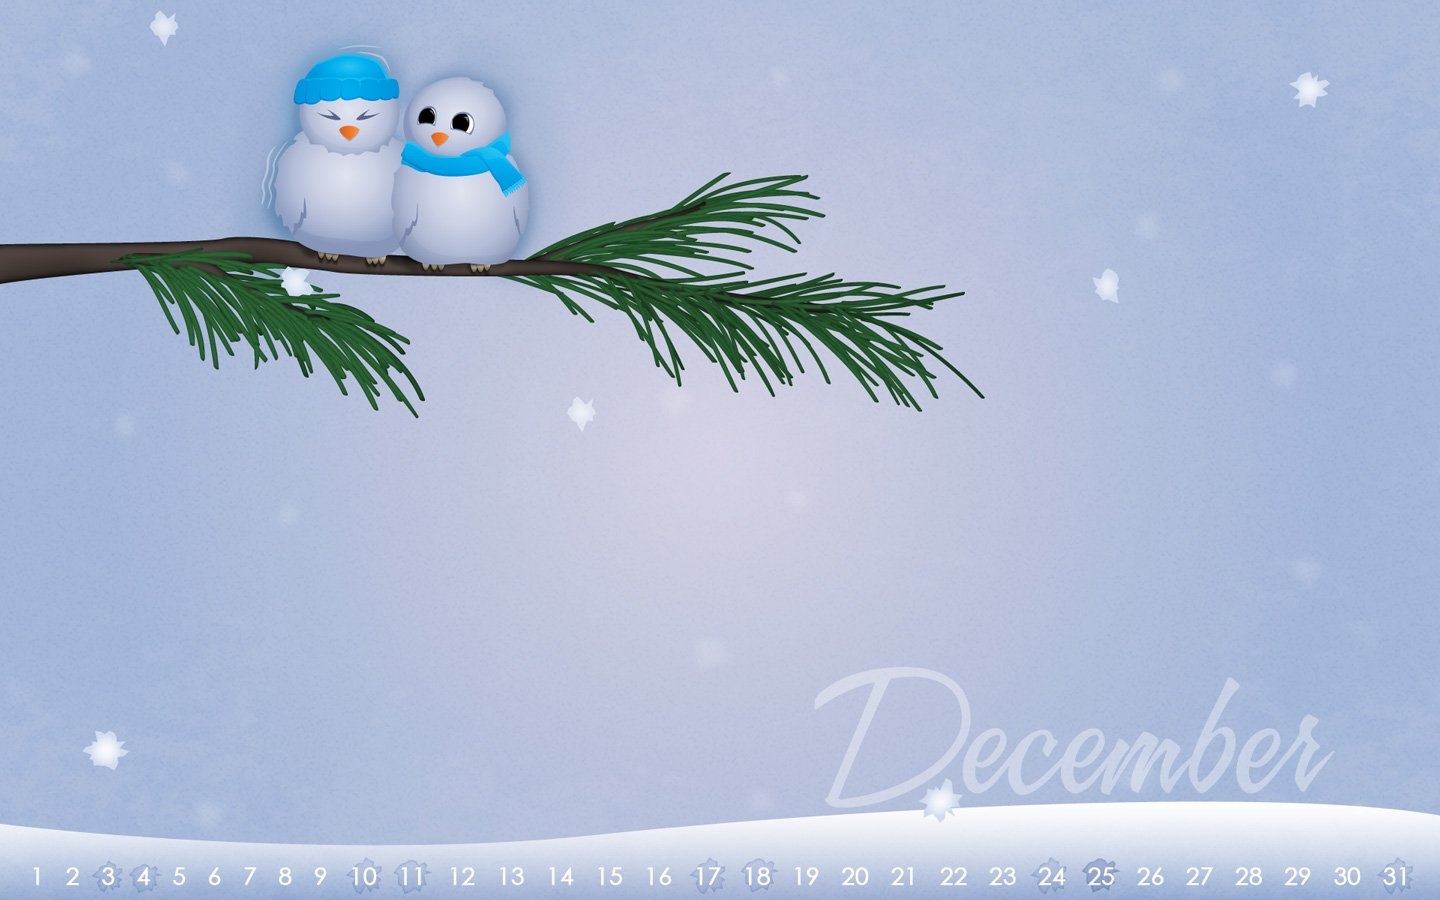 december winter wallpaper Large Images 1440x900